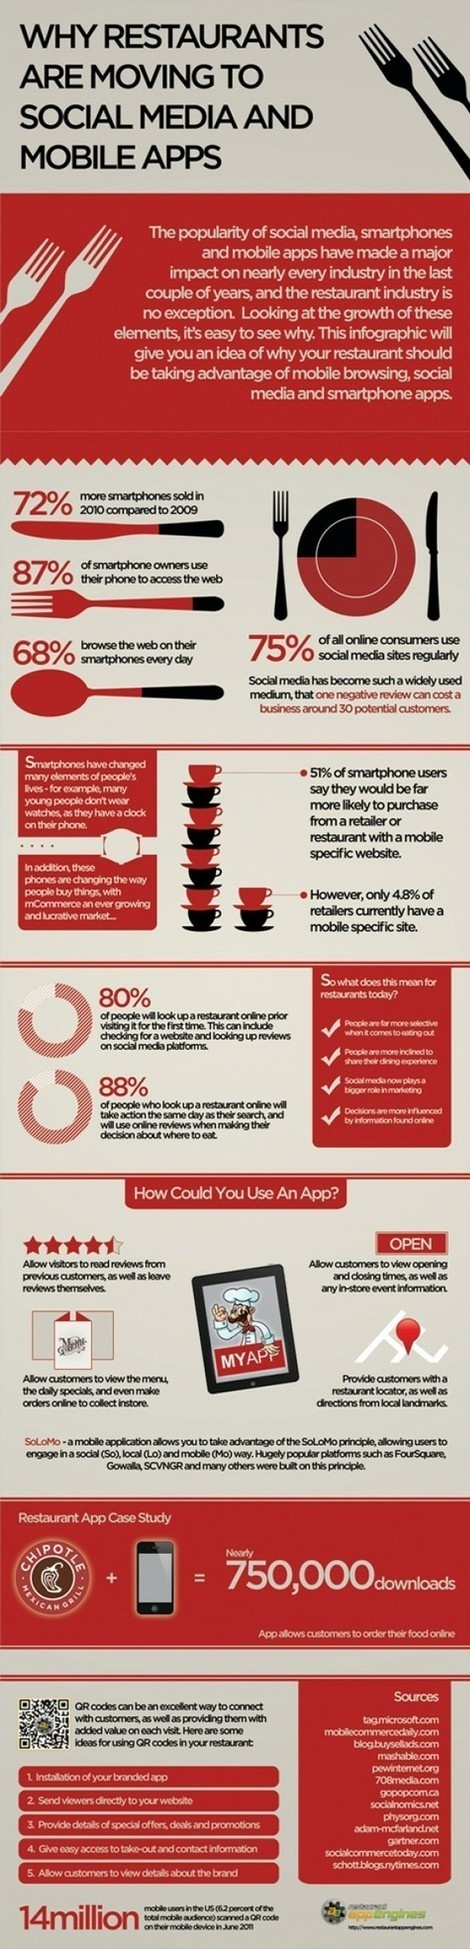 Social media, Mobile websites and morre reasons why restaurants are using this more and more